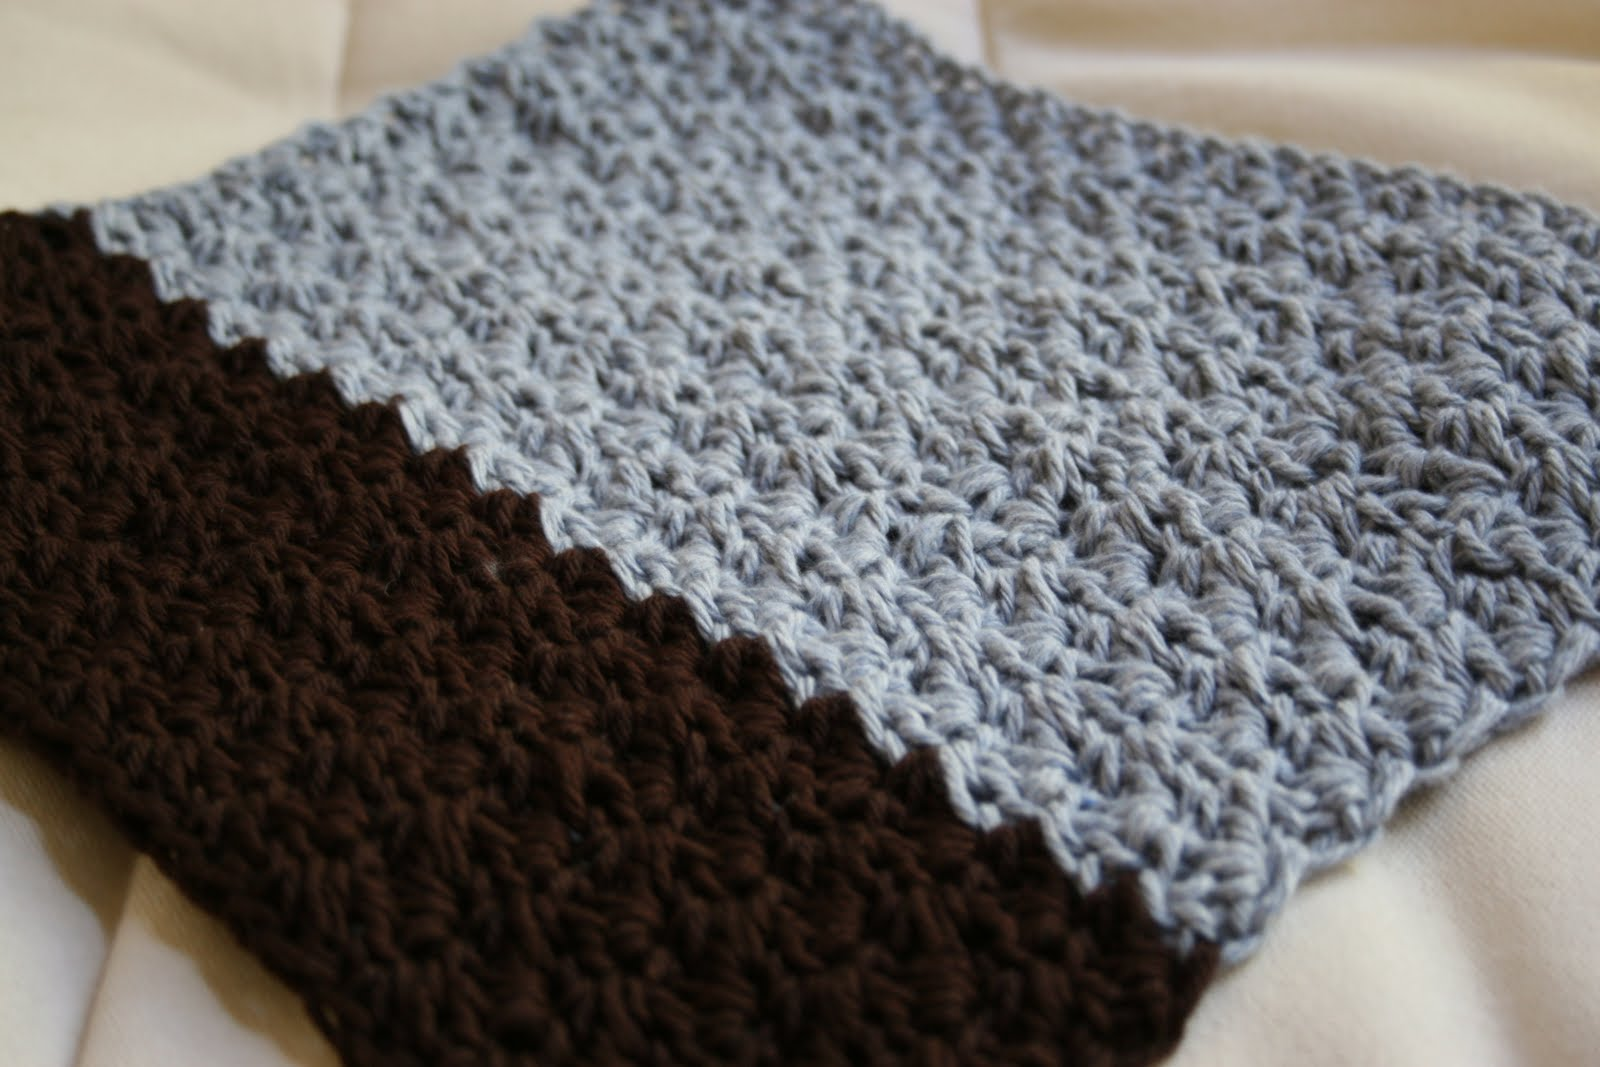 Crochet Stitches Grit : This is the Grit Stitch Washcloth from the Sandy Shore Washcloth Set ...